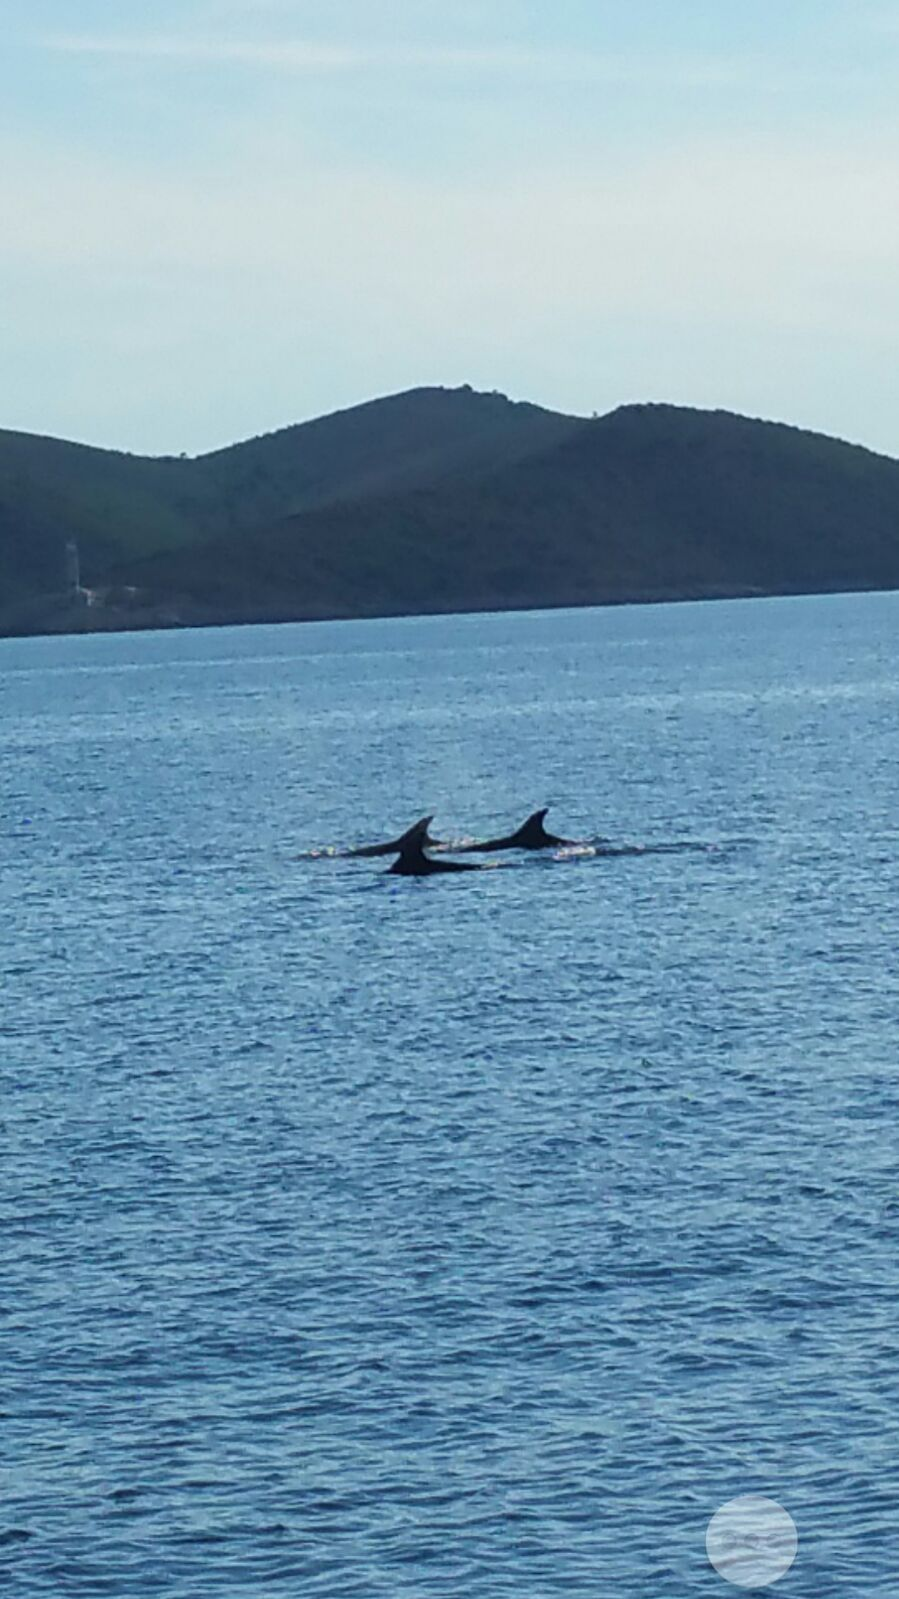 Croatian dolphins